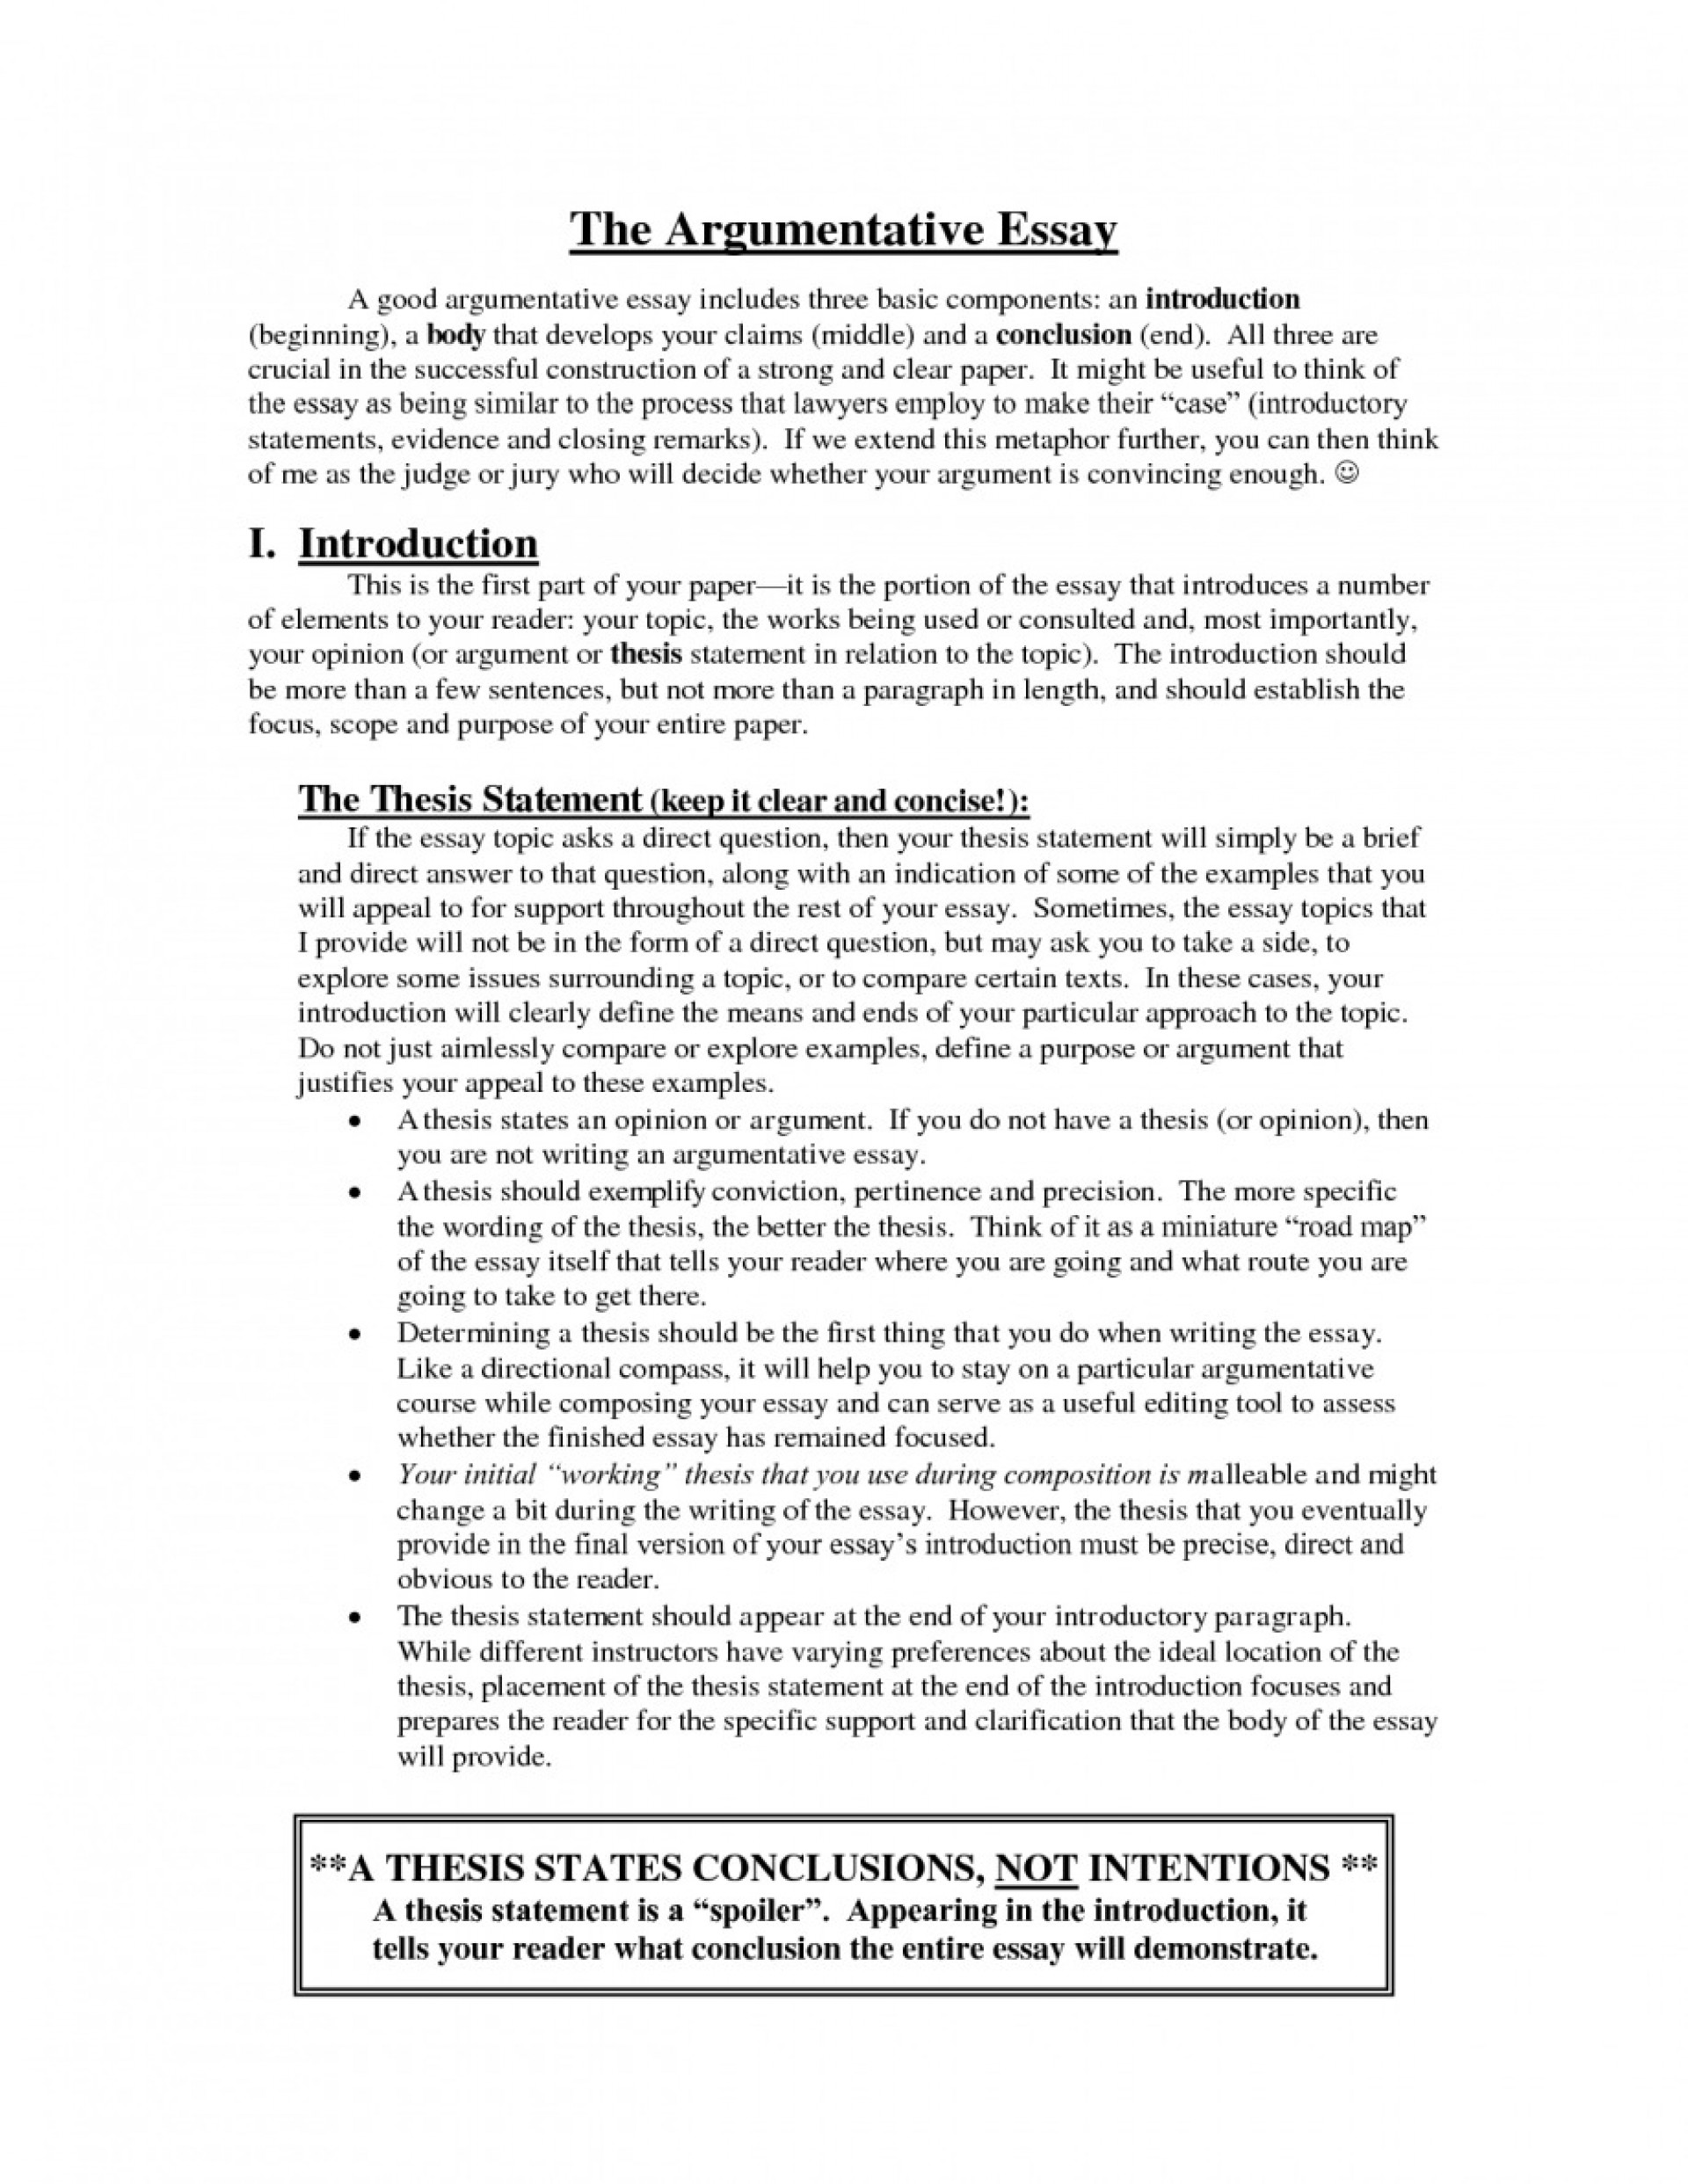 003 How To Write An Argumentative Essay Introduction Persuasive Paragraph Example Examples And Image Gallery Pertaining Sample About Bullying Format Smoking Unique For Pdf 1920